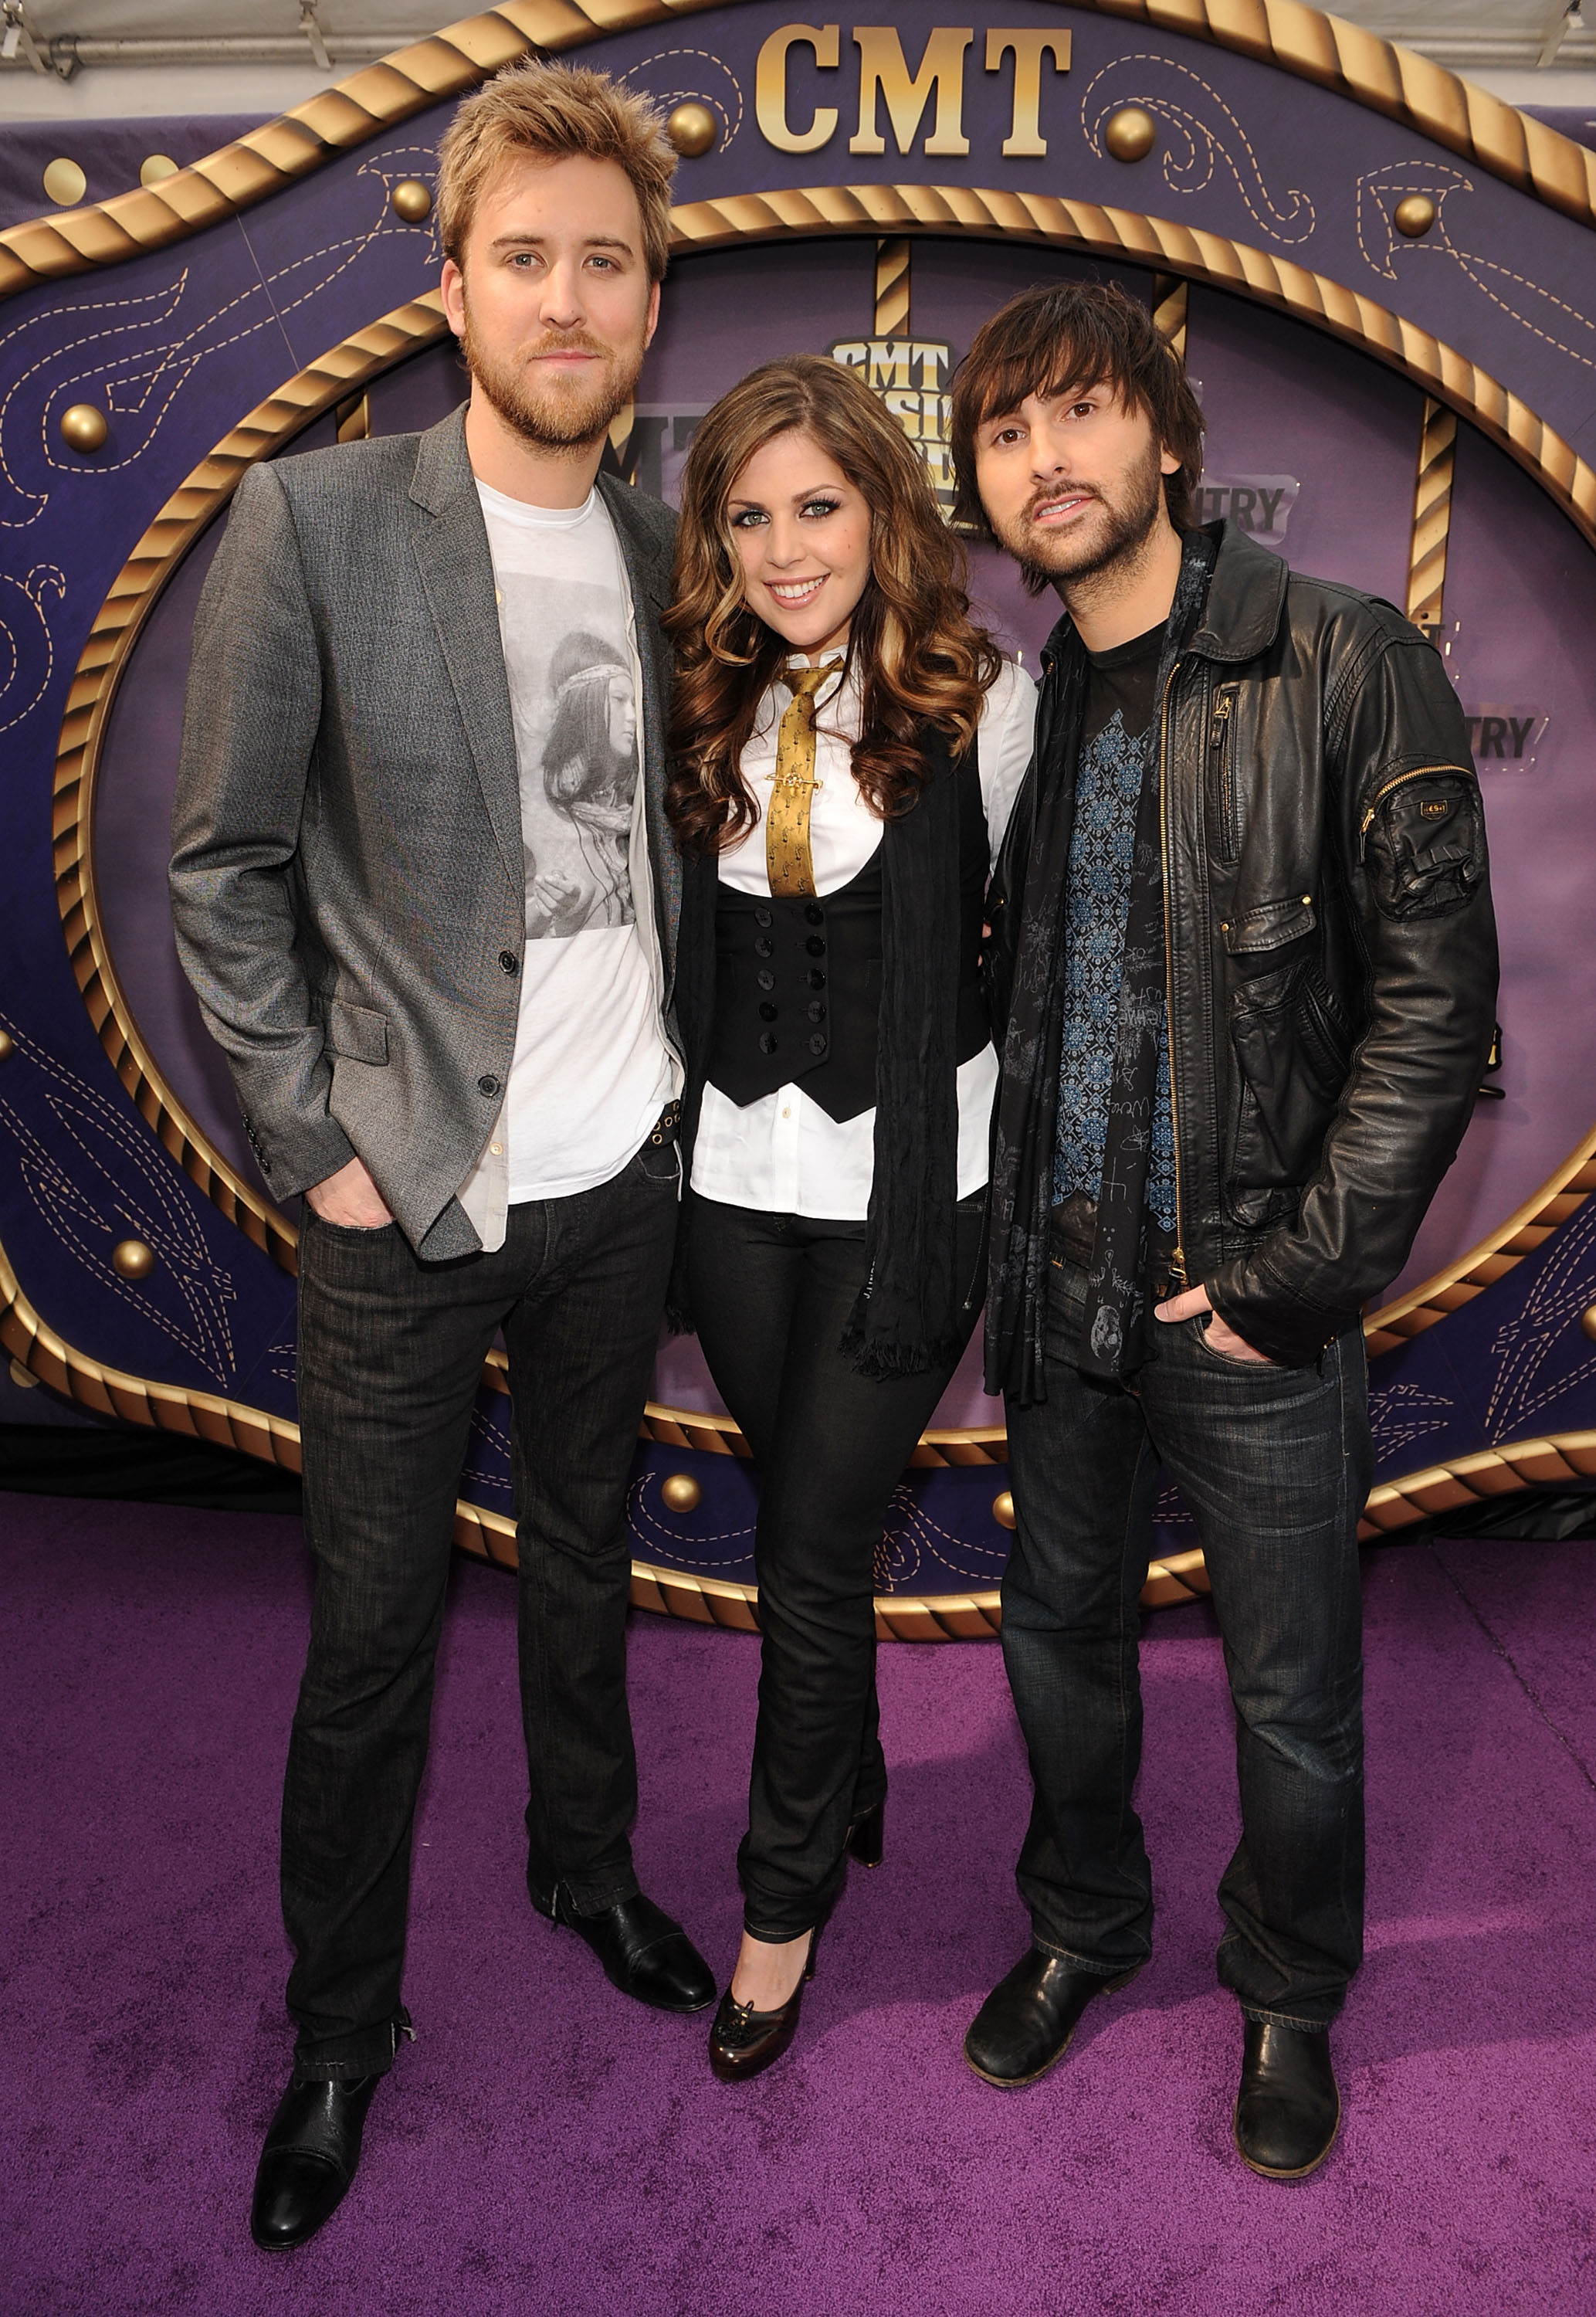 Lady Antebellum attends the CMT Music Awards at the Curb Event Center at Belmont University in Nashville on April 14, 2008.